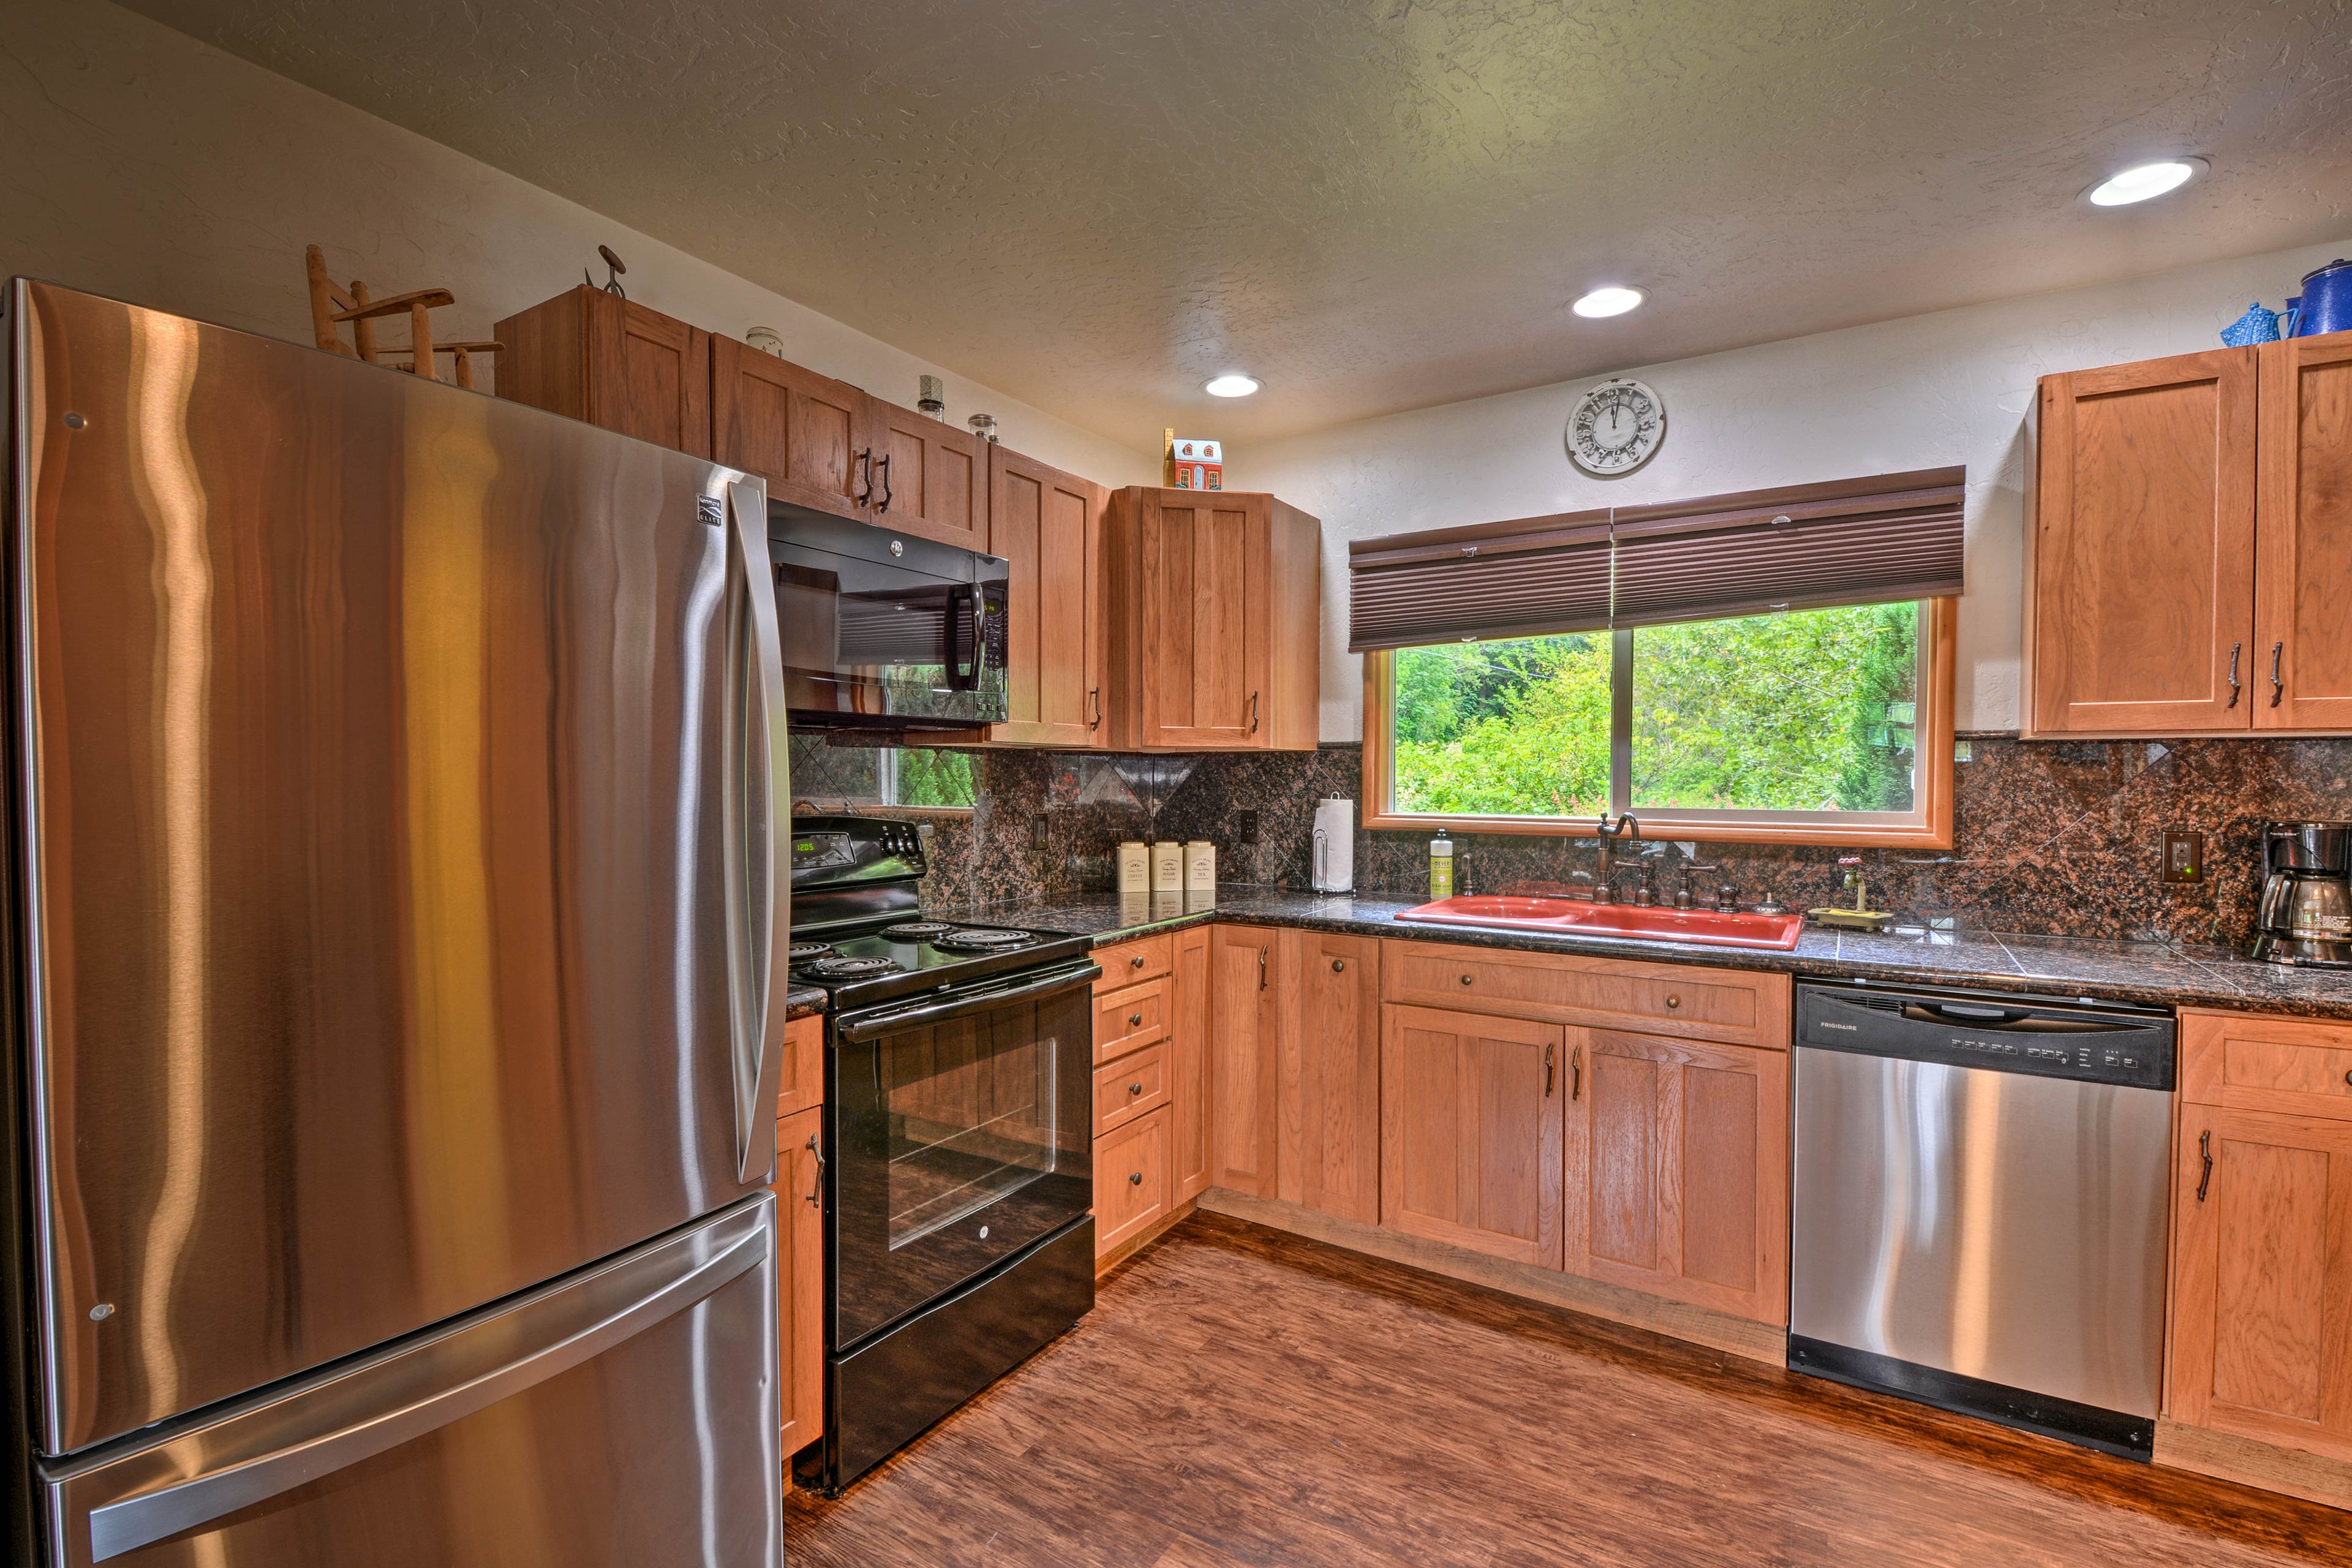 Prepare tasty homemade meals in the fully equipped kitchen.